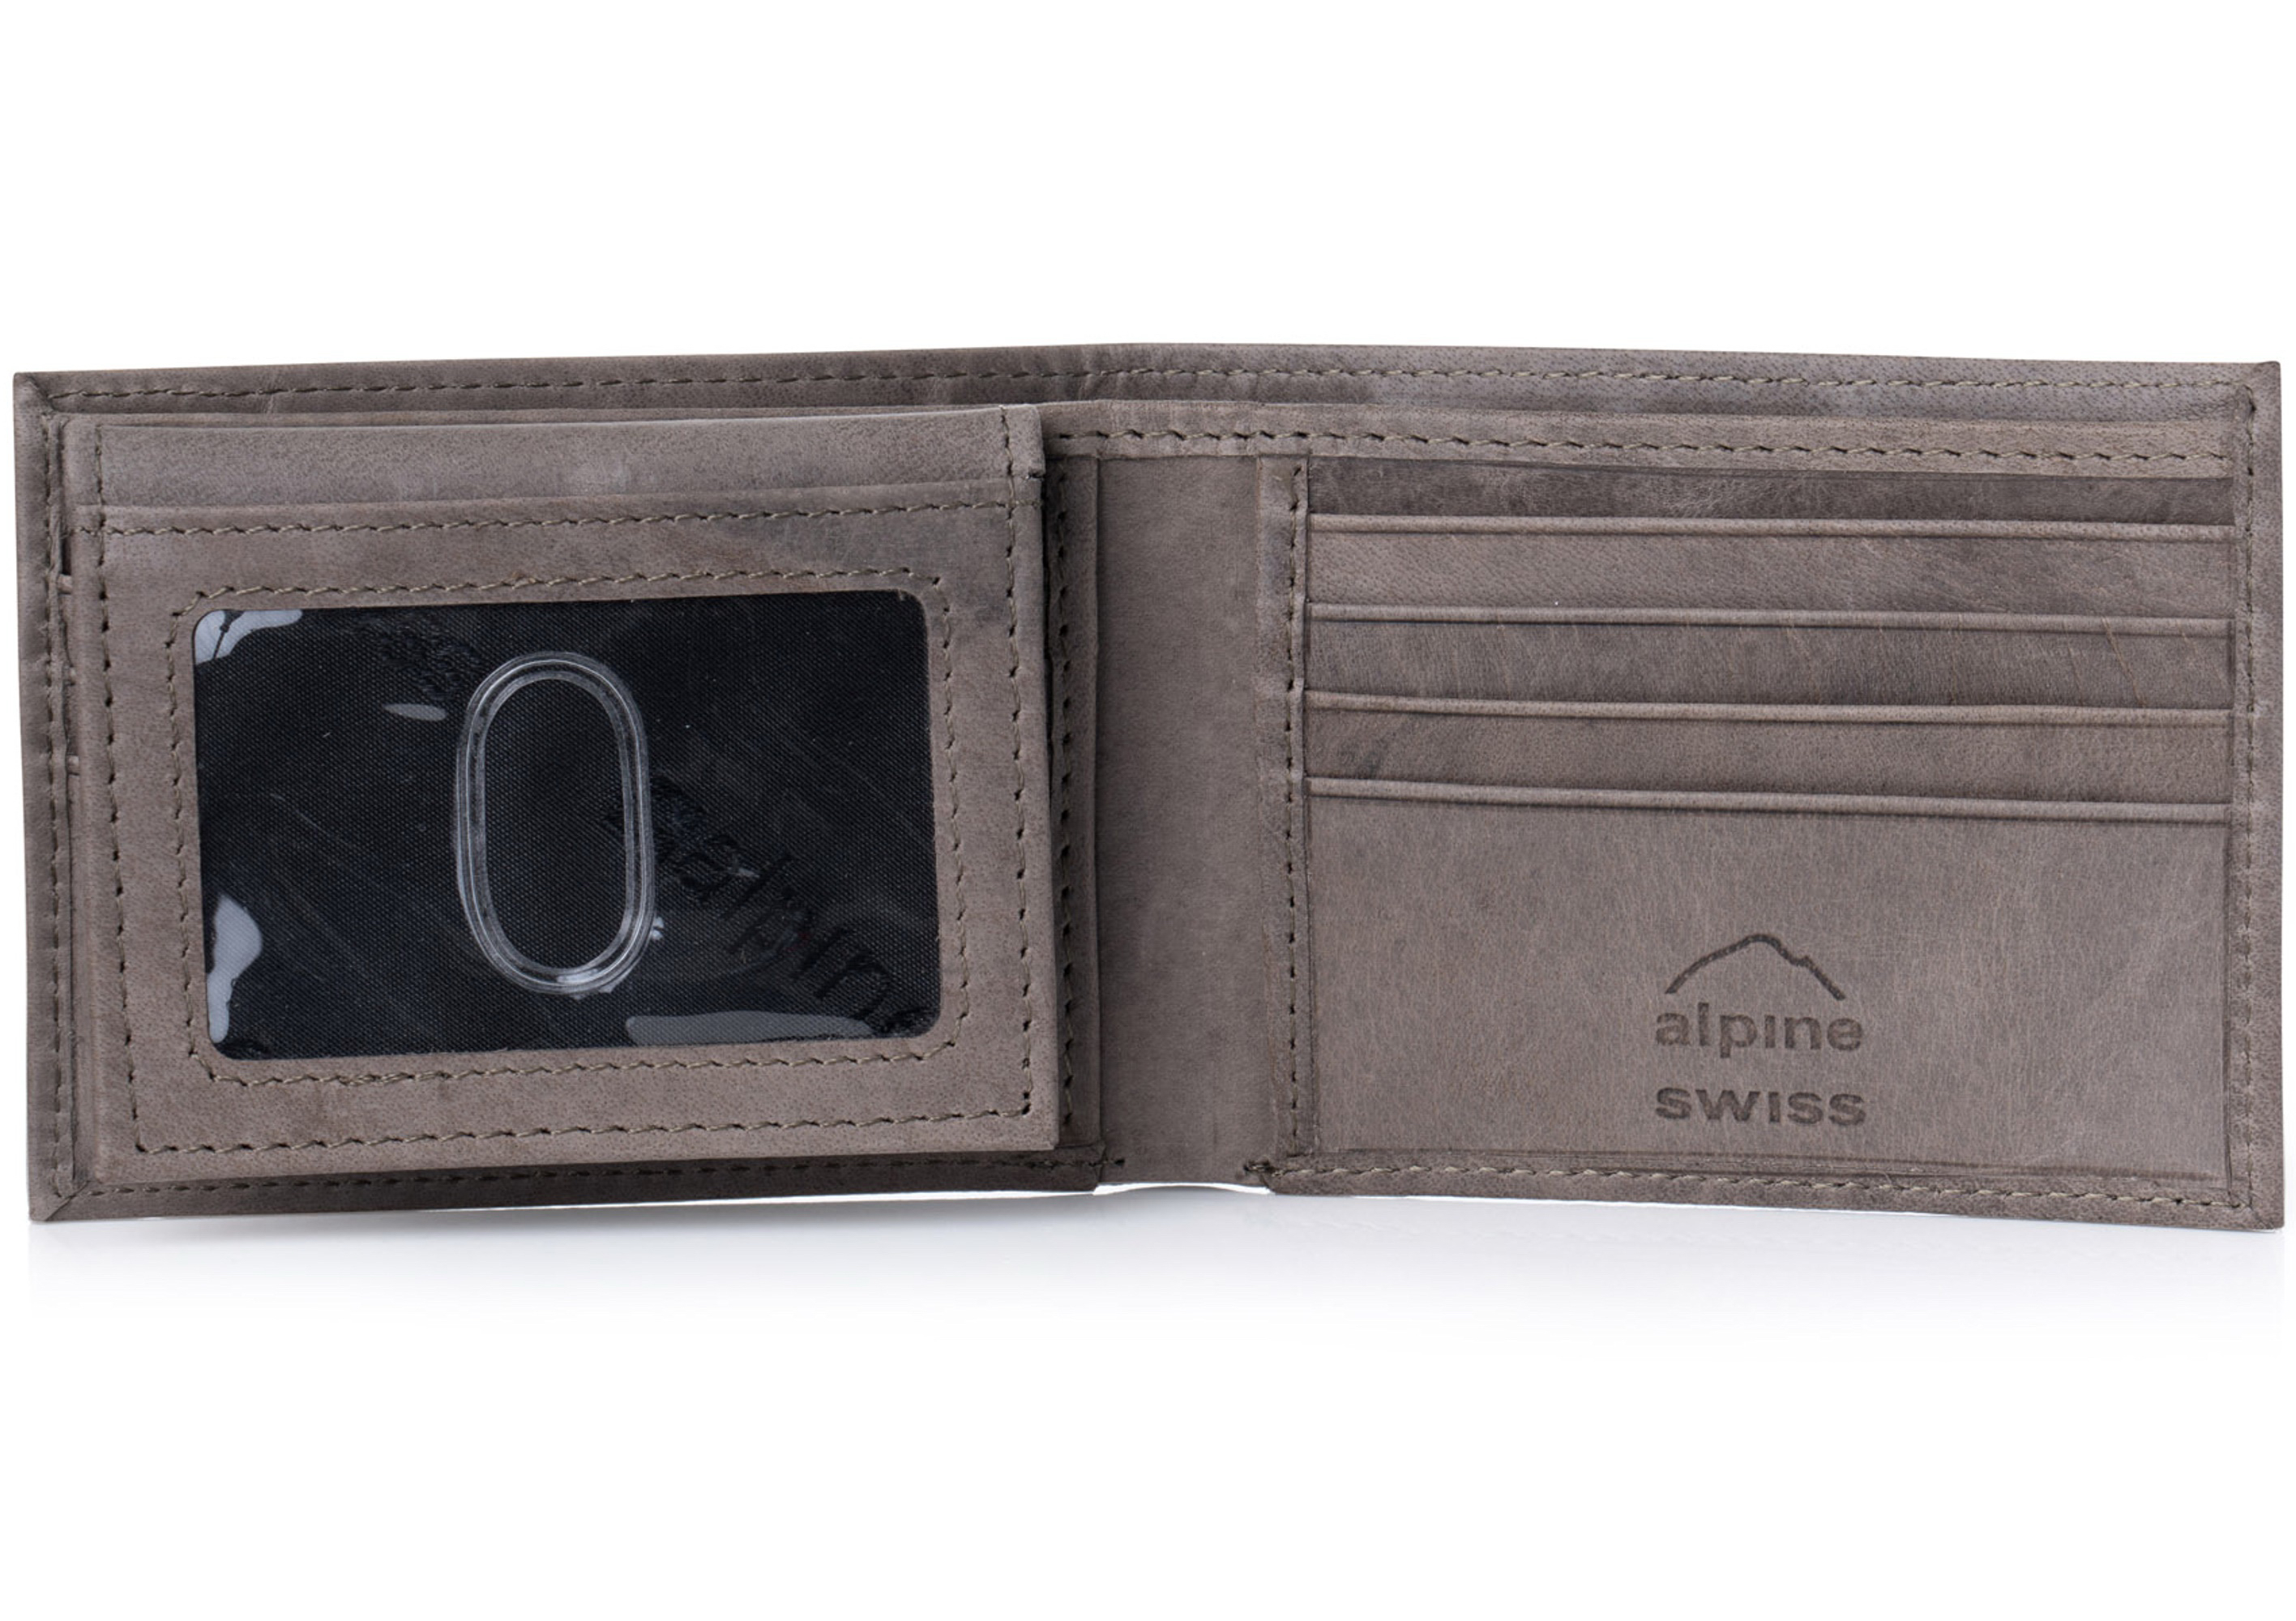 Alpine-Swiss-RFID-Blocking-Mens-Leather-Bifold-Wallet-Removable-ID-Card-Passcase thumbnail 37